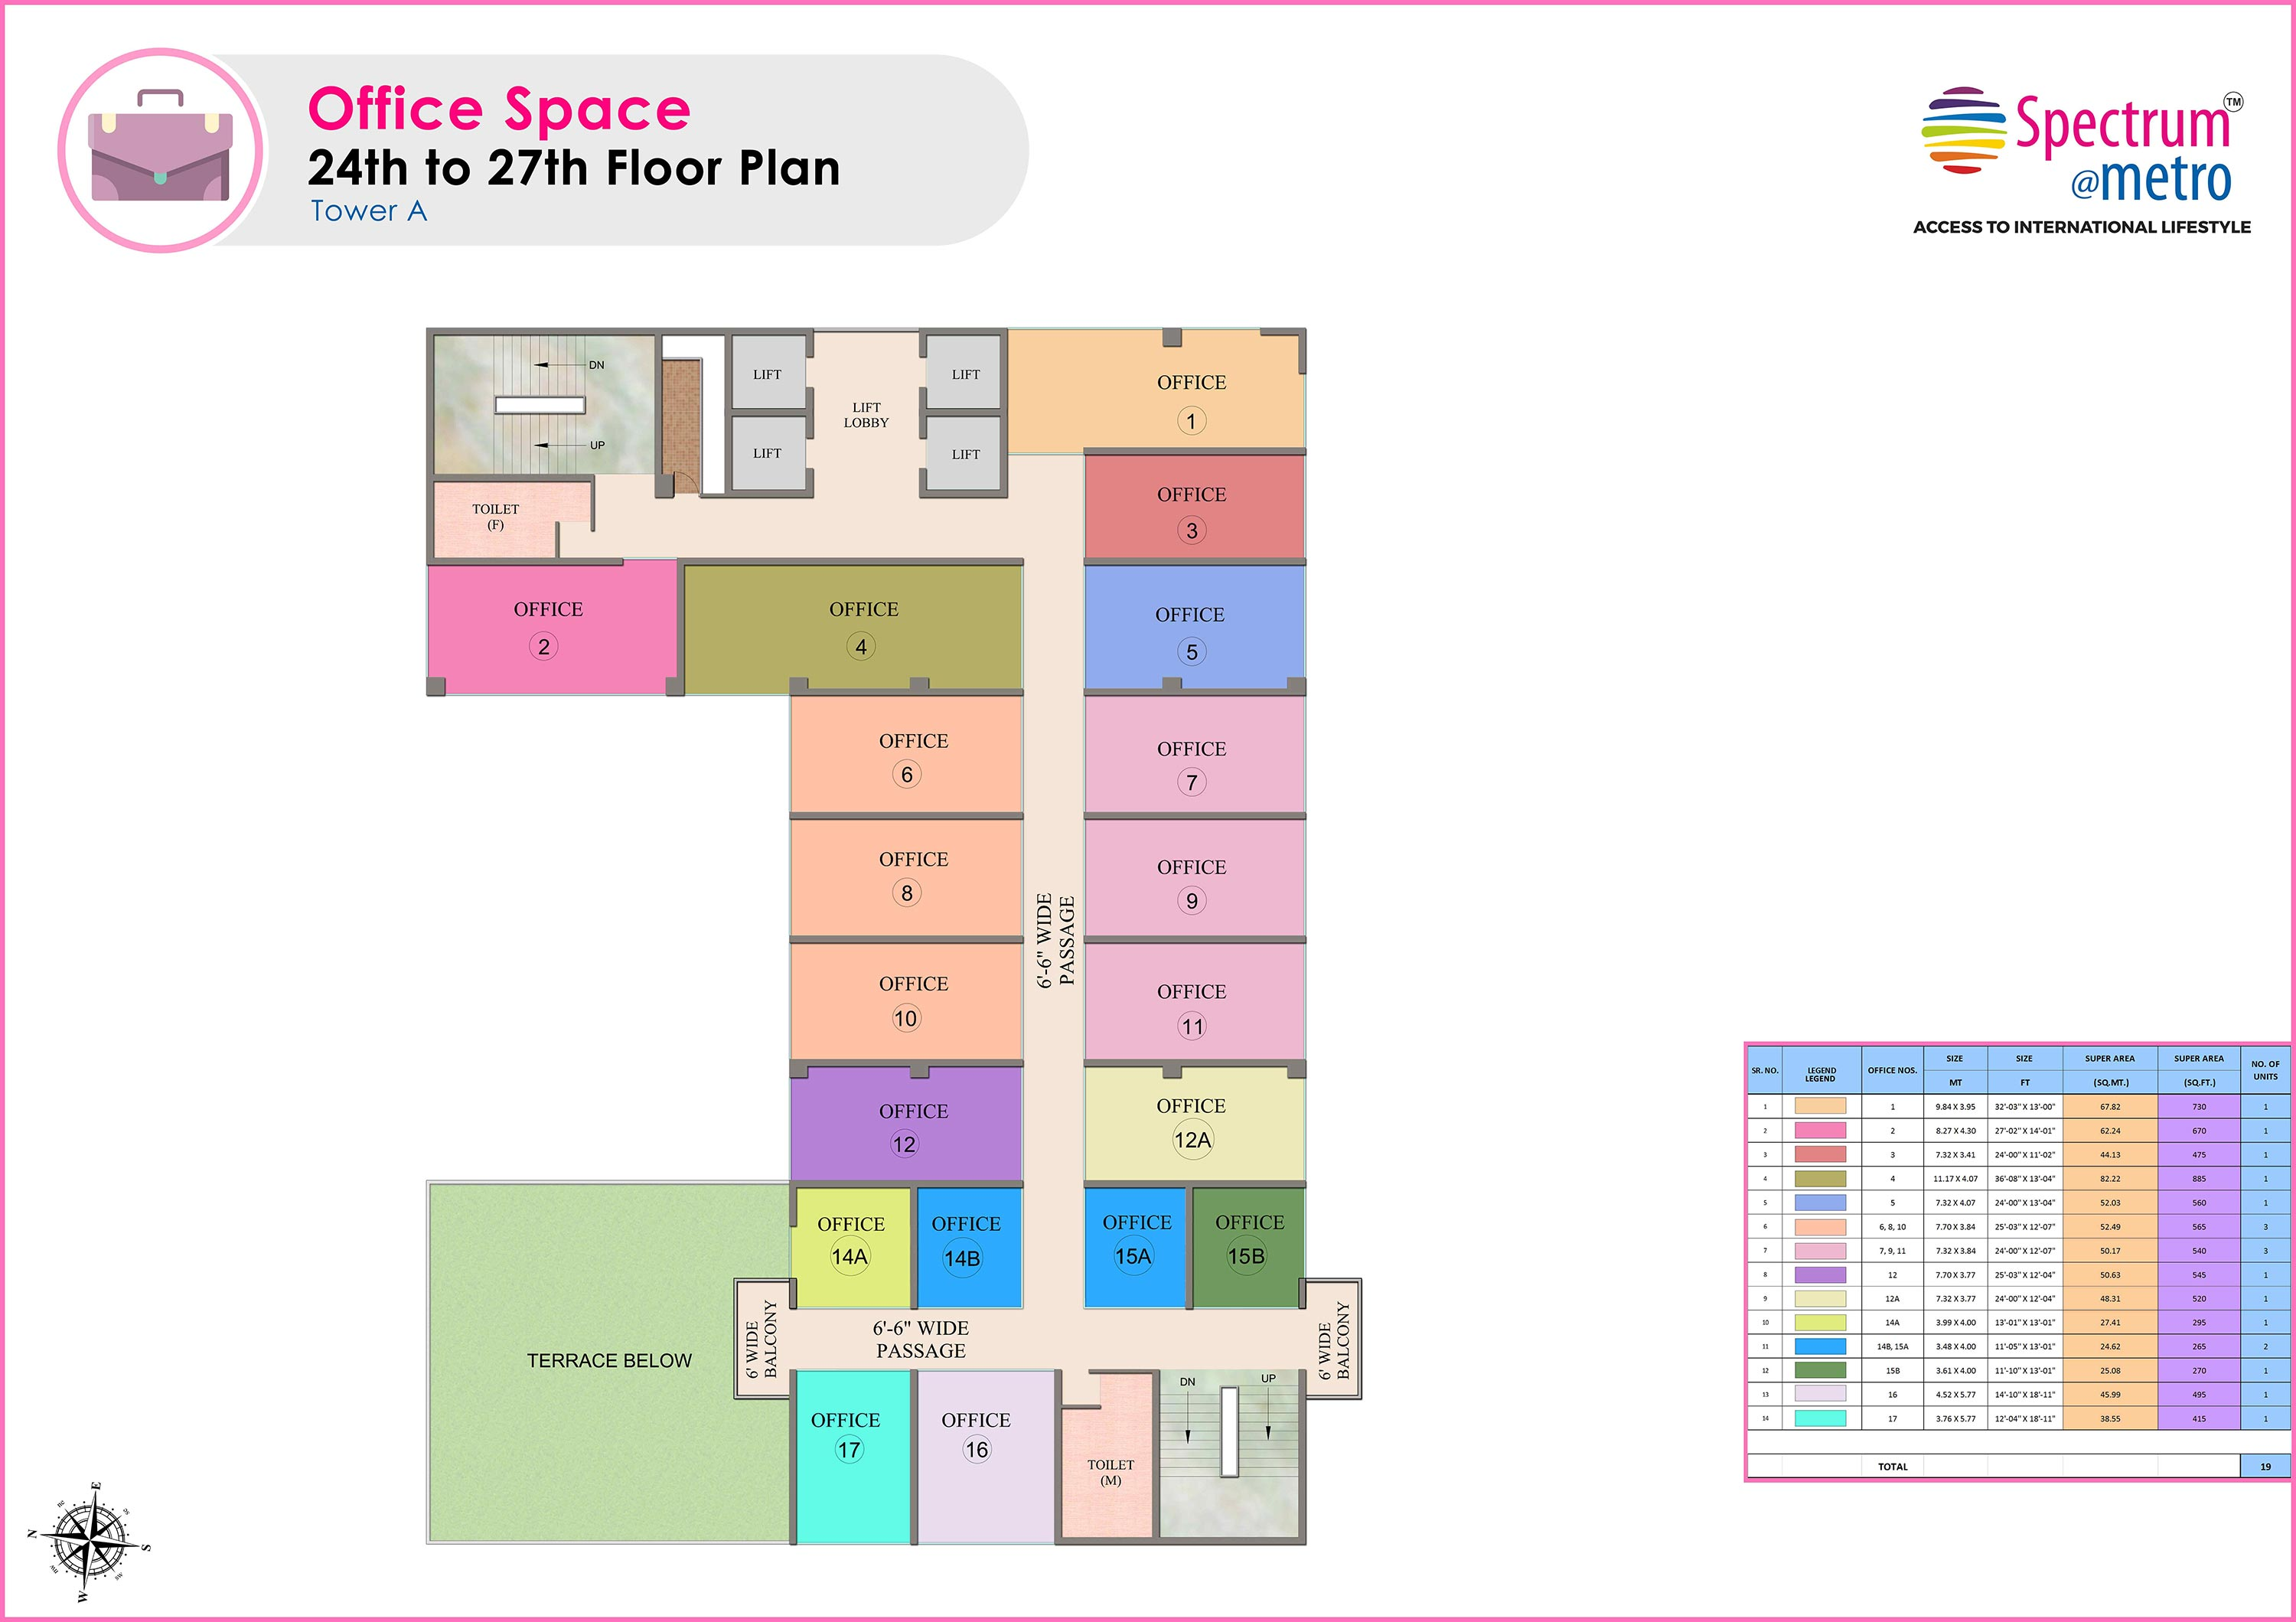 office space floor plan. Fplan-1 Office Space Floor Plan